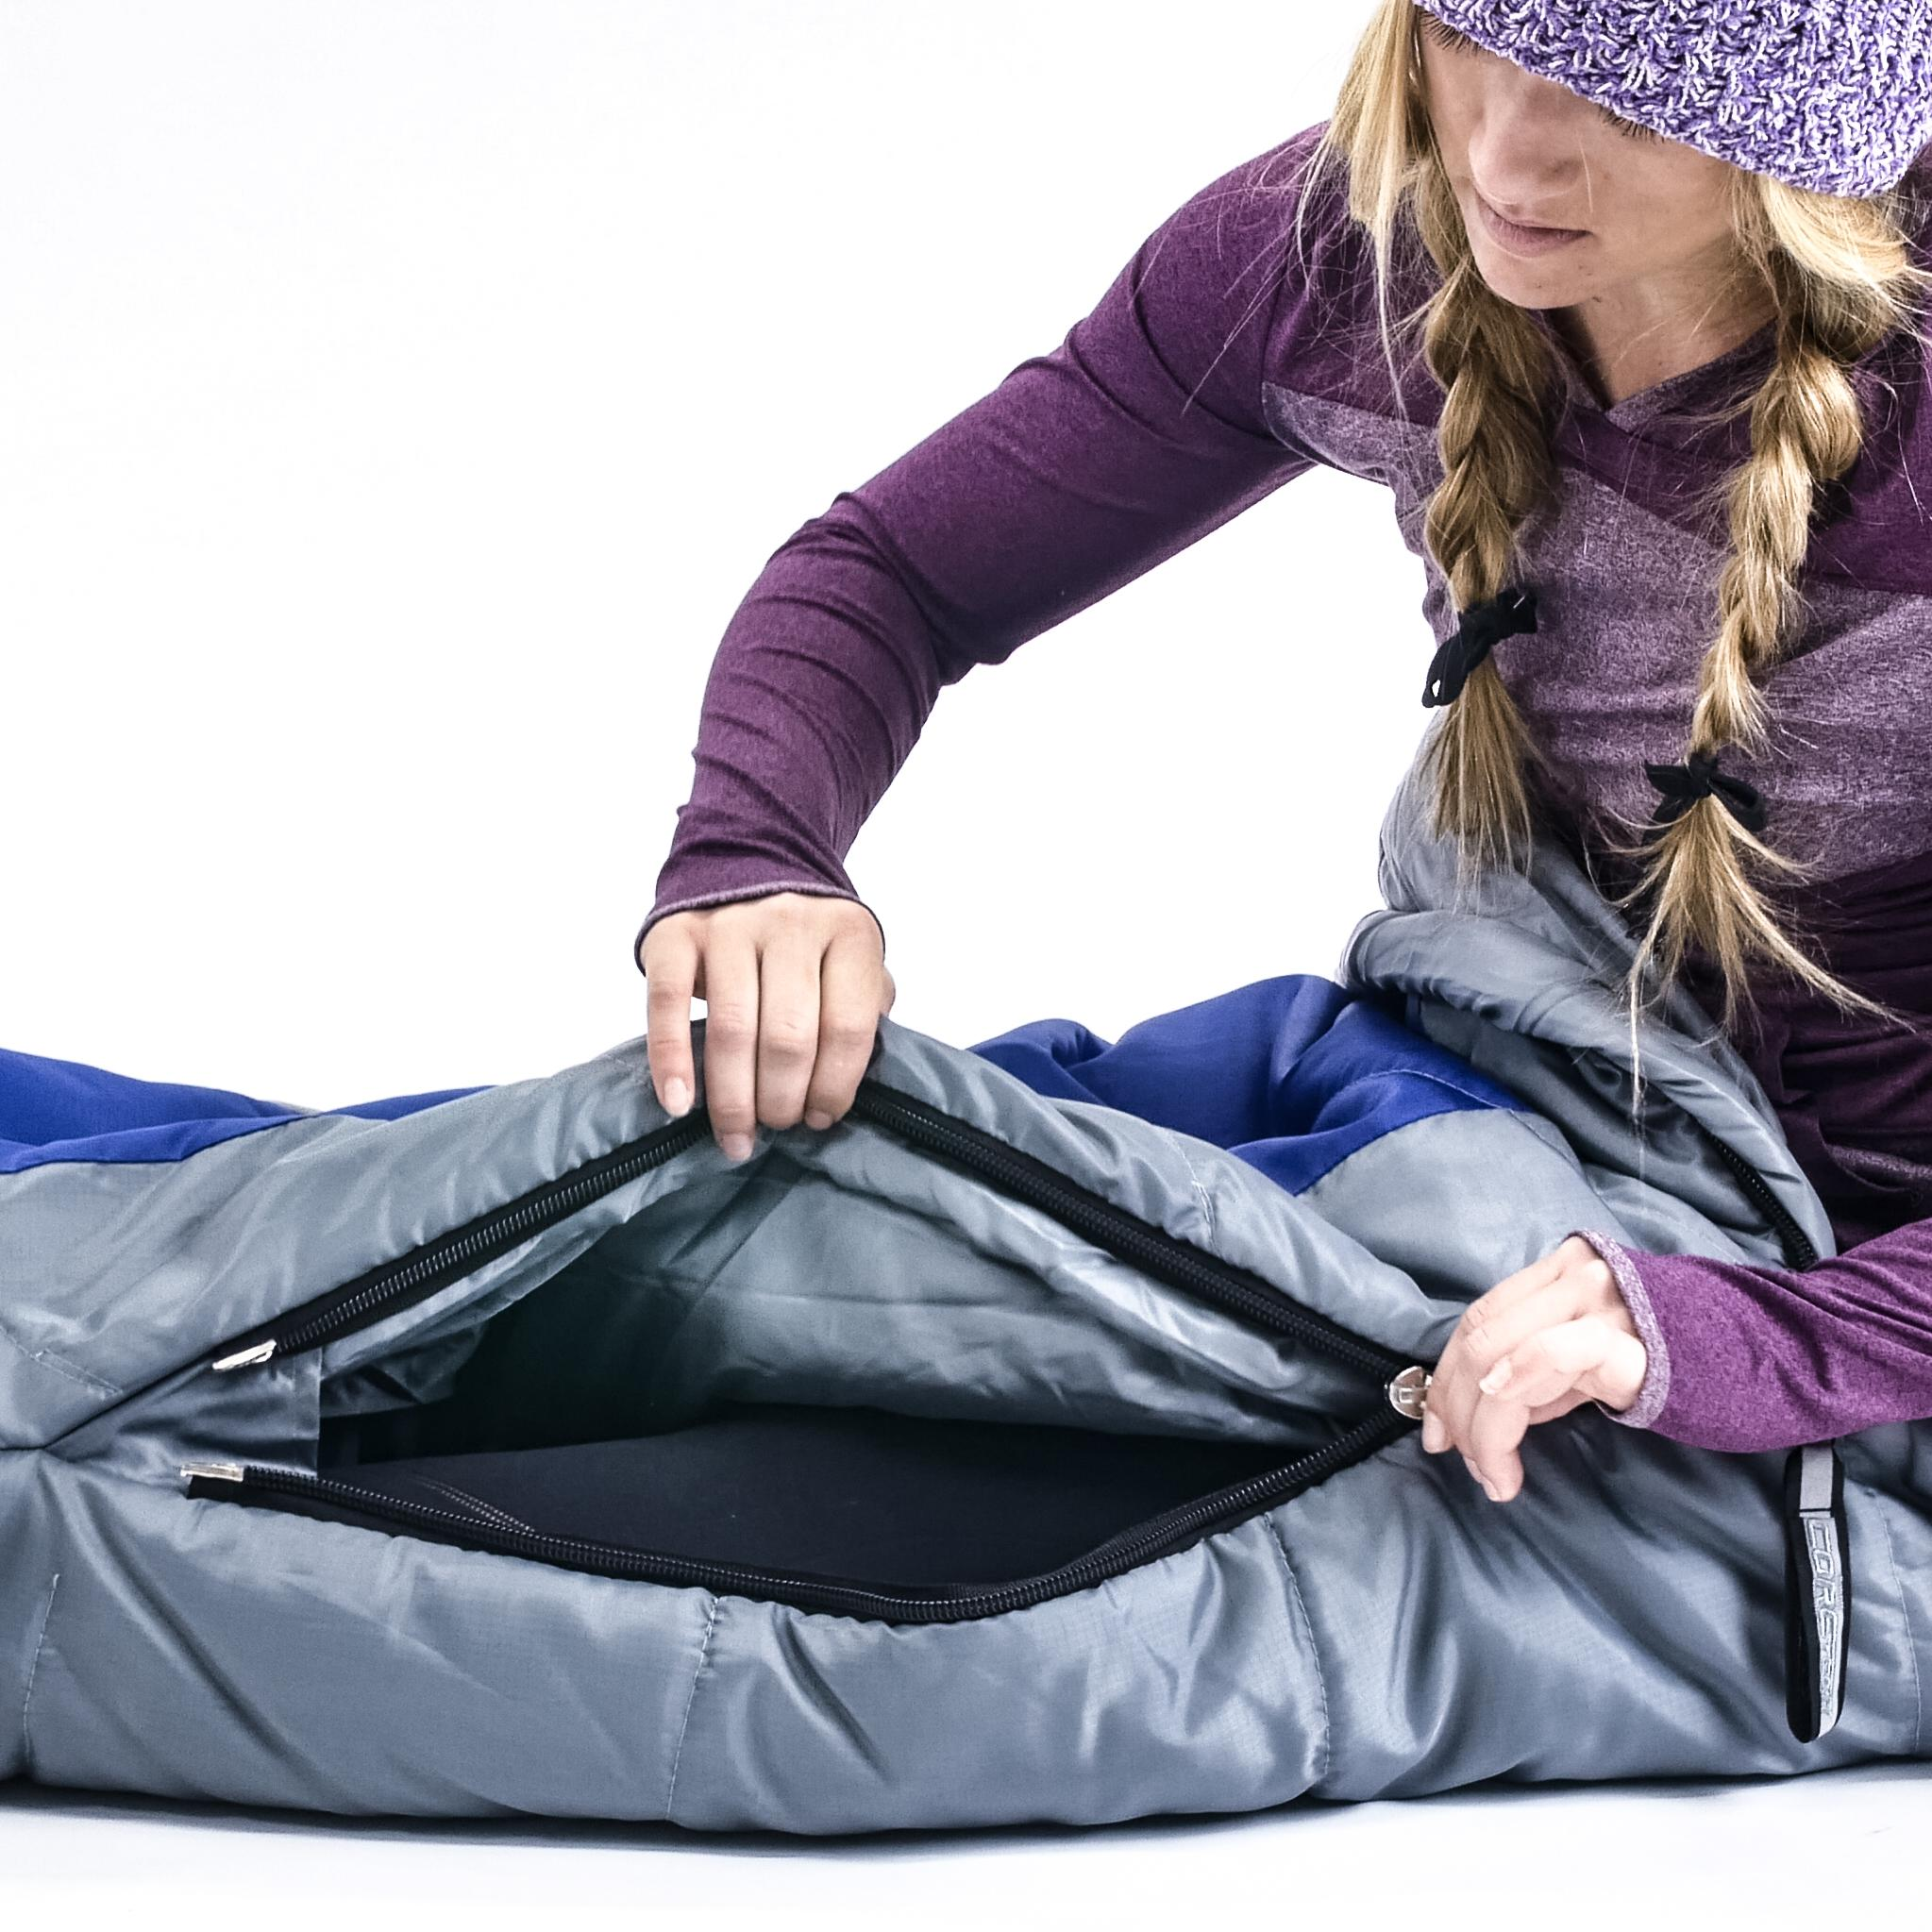 Northstar Tactical Coretech Sleeping Bag, Blue, 3.5-Pound ...